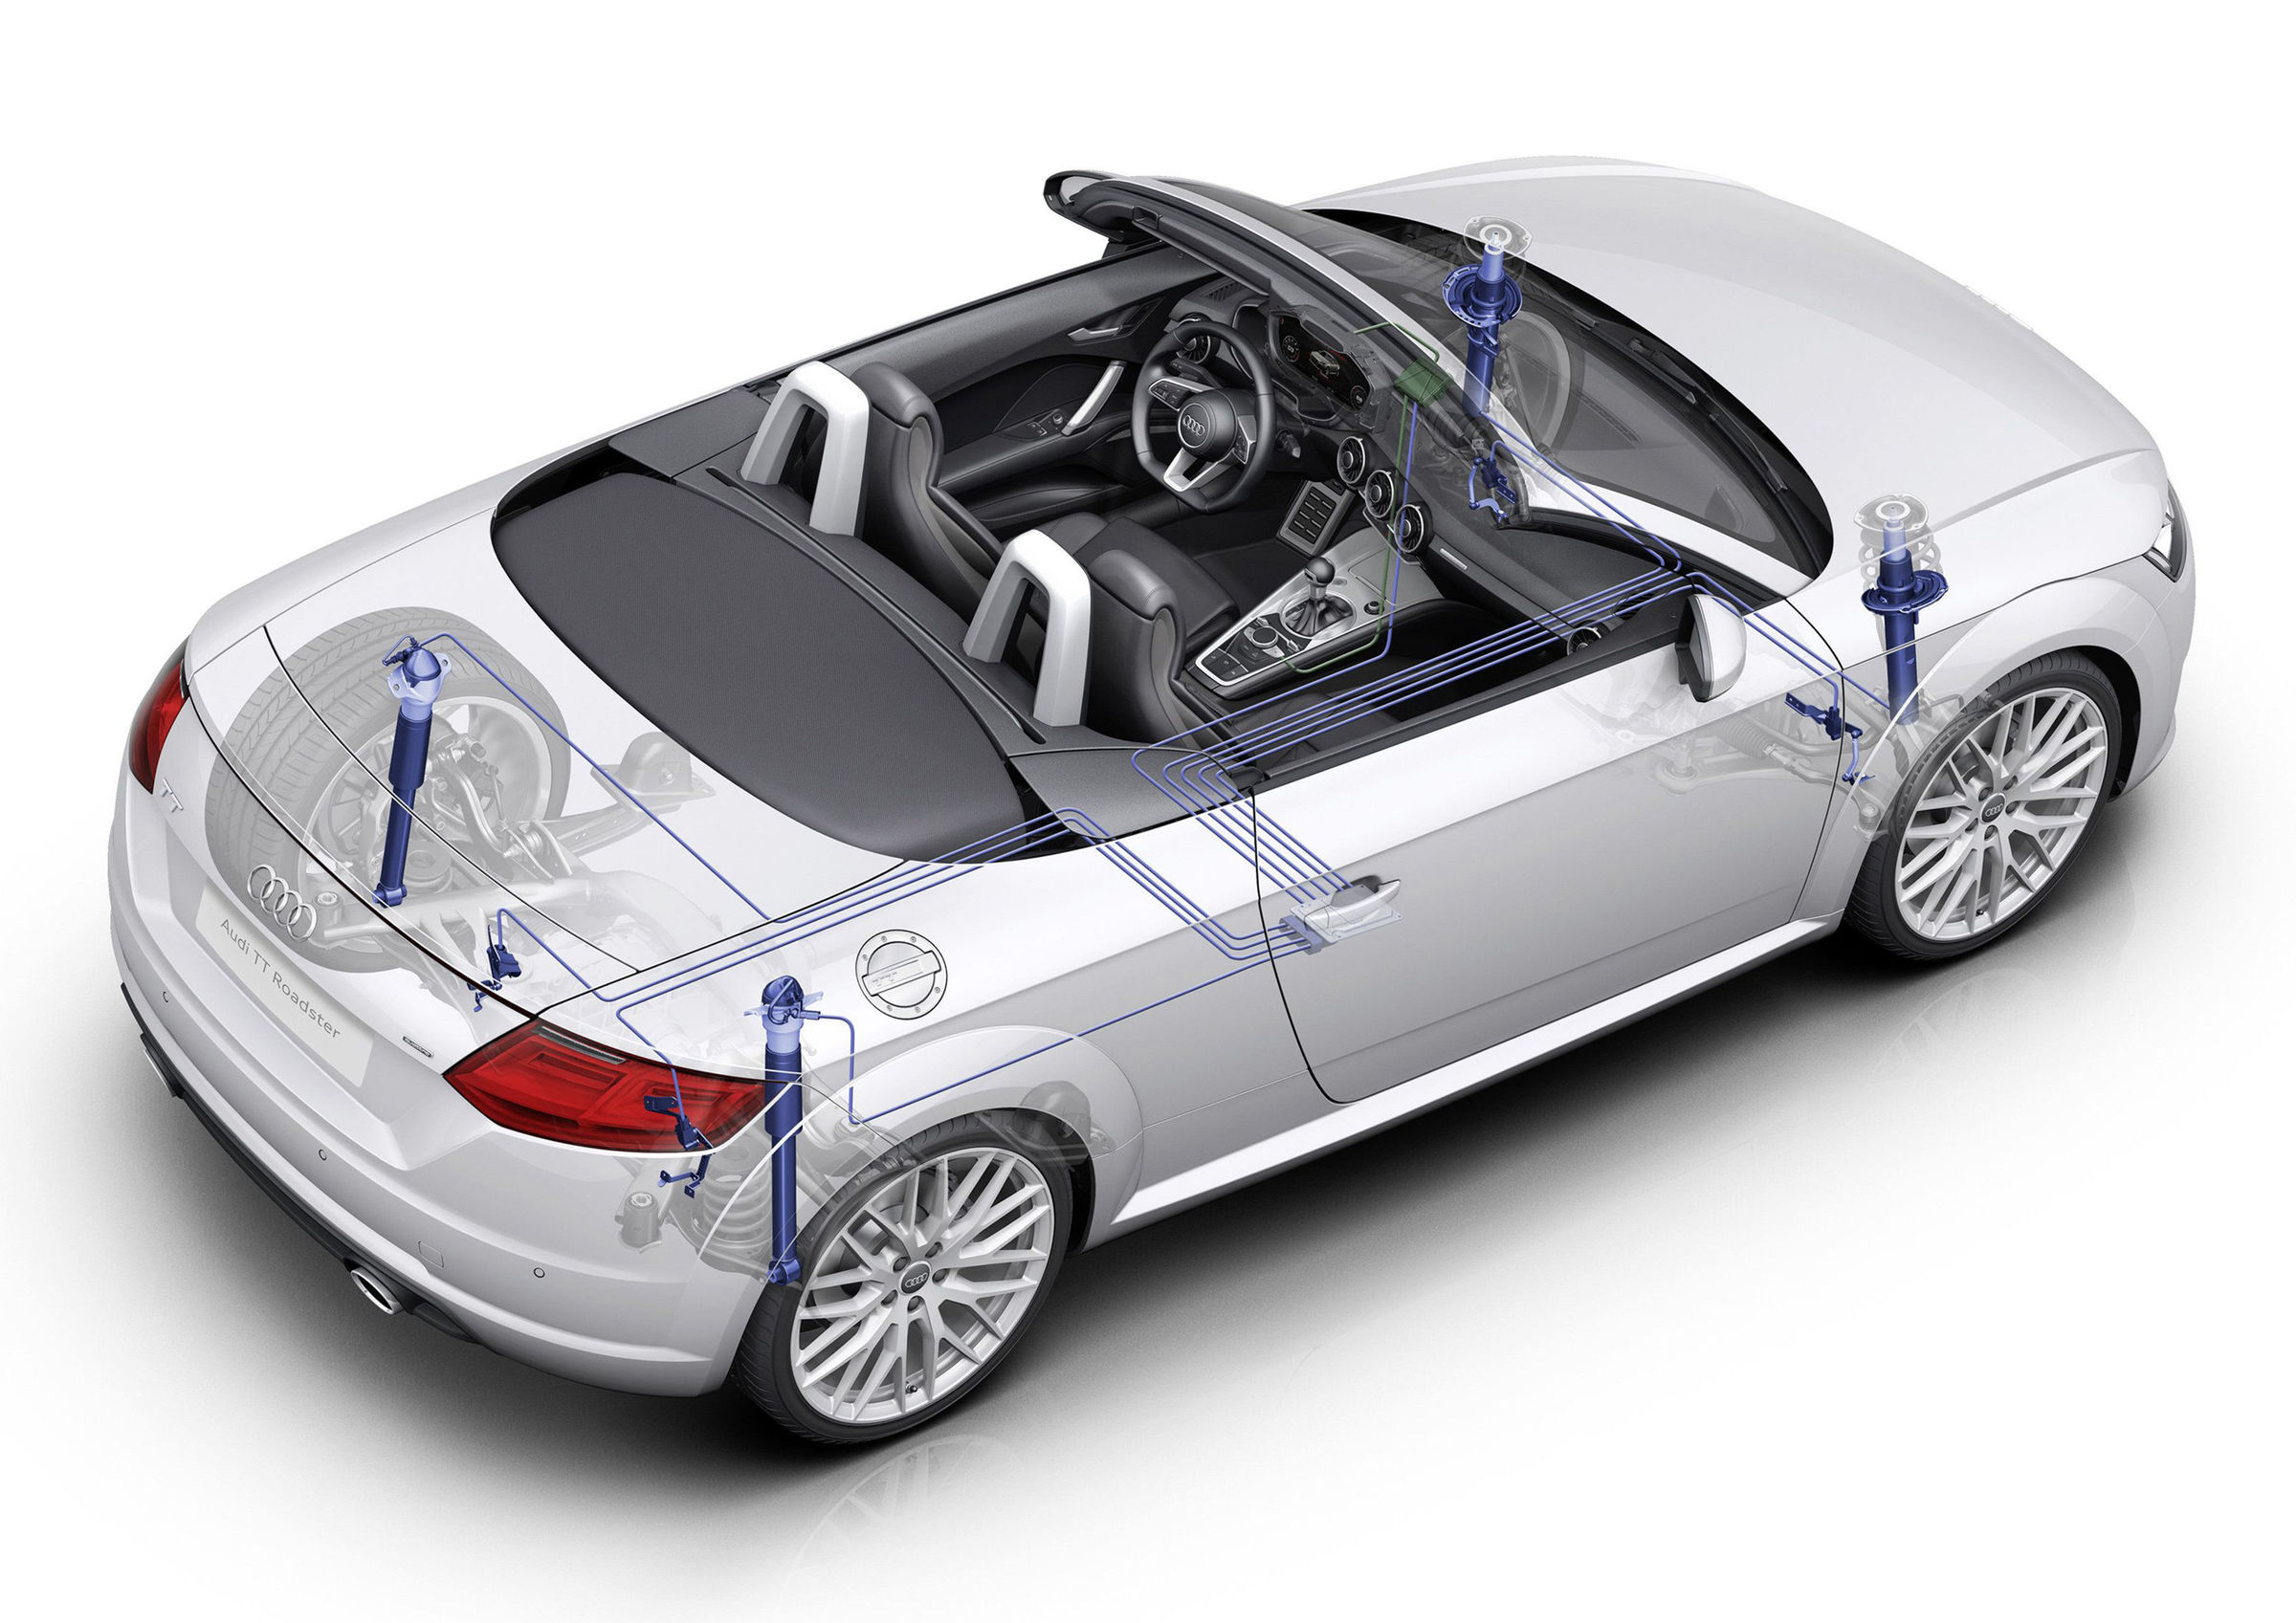 chassis audi mediacenter system diagram moreover audi a8 air suspension diagram on oil system [ 2400 x 1697 Pixel ]